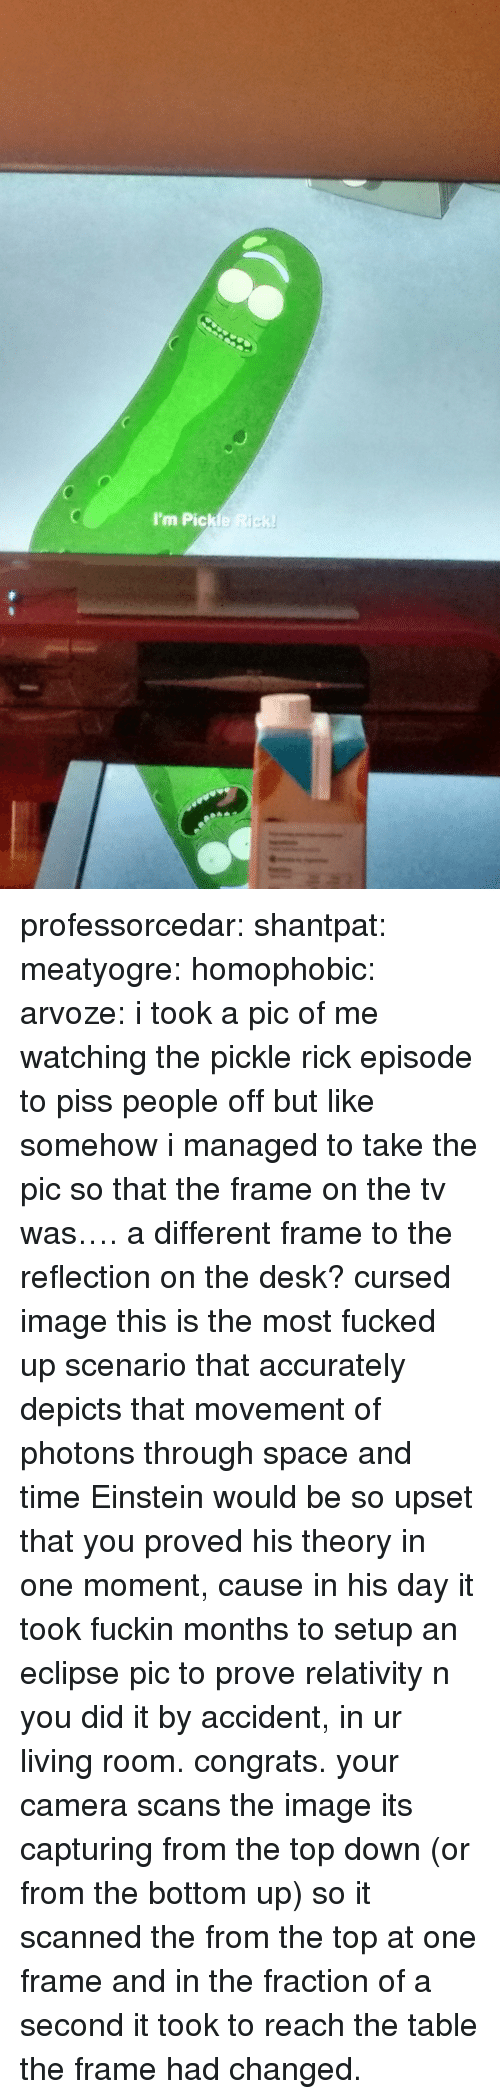 Tumblr, Blog, and Camera: I'm Pickle Rick professorcedar:  shantpat:  meatyogre:  homophobic:  arvoze: i took a pic of me watching the pickle rick episode to piss people off but like somehow i managed to take the pic so that the frame on the tv was…. a different frame to the reflection on the desk?  cursed image  this is the most fucked up scenario that accurately depicts that movement of photons through space and time  Einstein would be so upset that you proved his theory in one moment, cause in his day it took fuckin months to setup an eclipse pic to prove relativity n you did it by accident, in ur living room. congrats.   your camera scans the image its capturing from the top down (or from the bottom up) so it scanned the from the top at one frame and in the fraction of a second it took to reach the table the frame had changed.